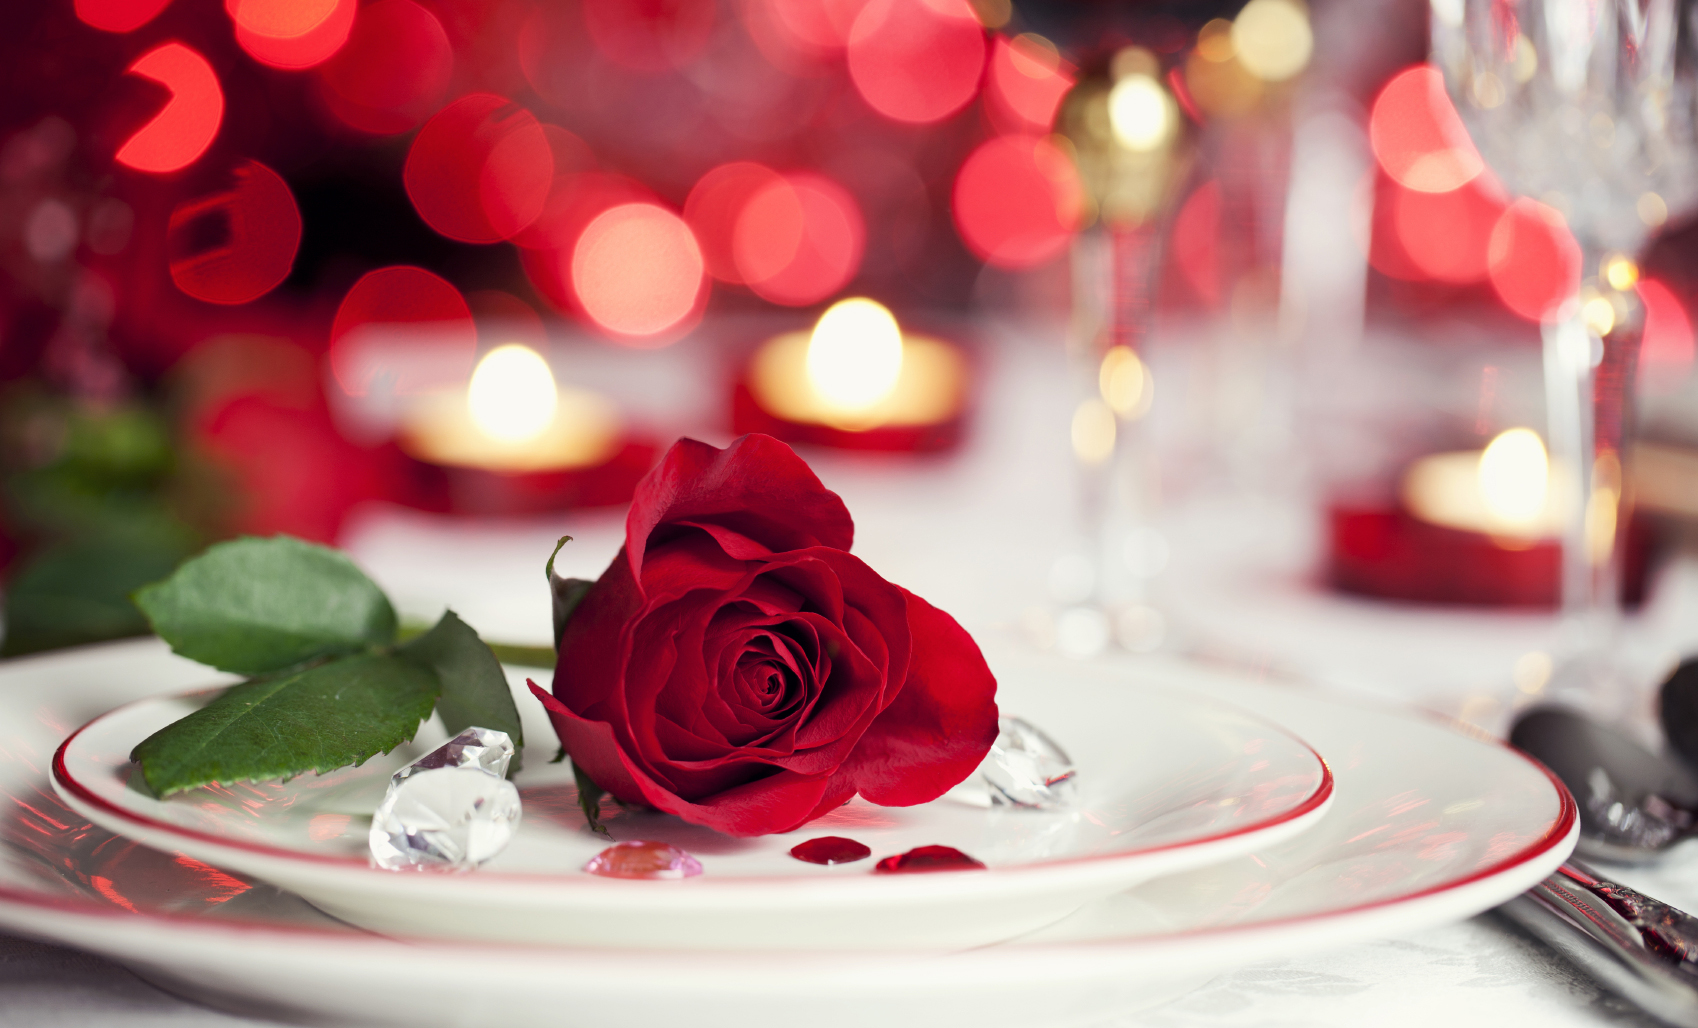 valentines-dinner plate with a rose